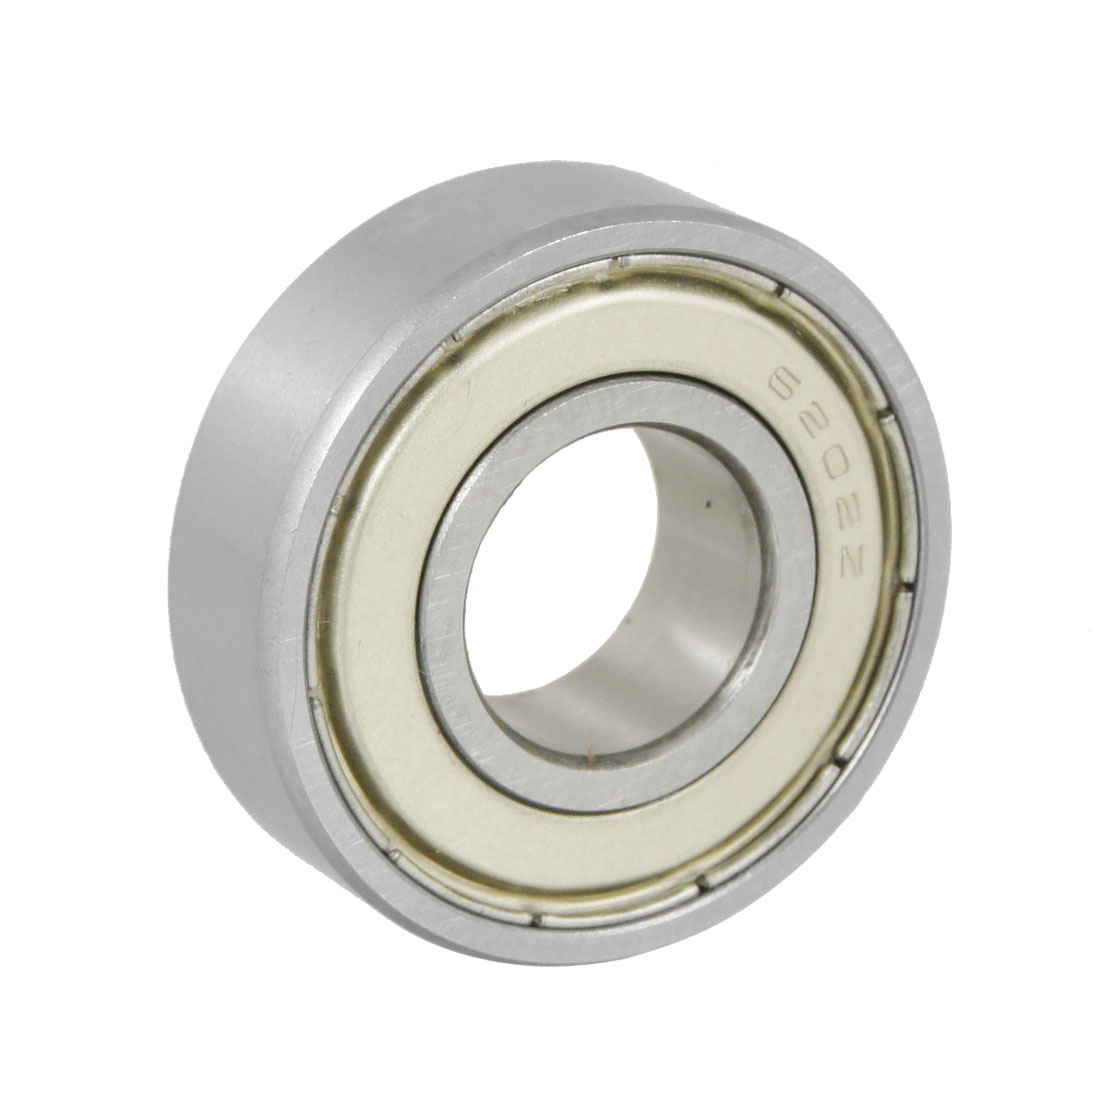 15mm x 35mm x 11mm 6202Z Shielded Miniature Deep Groove Radial Ball Bearing